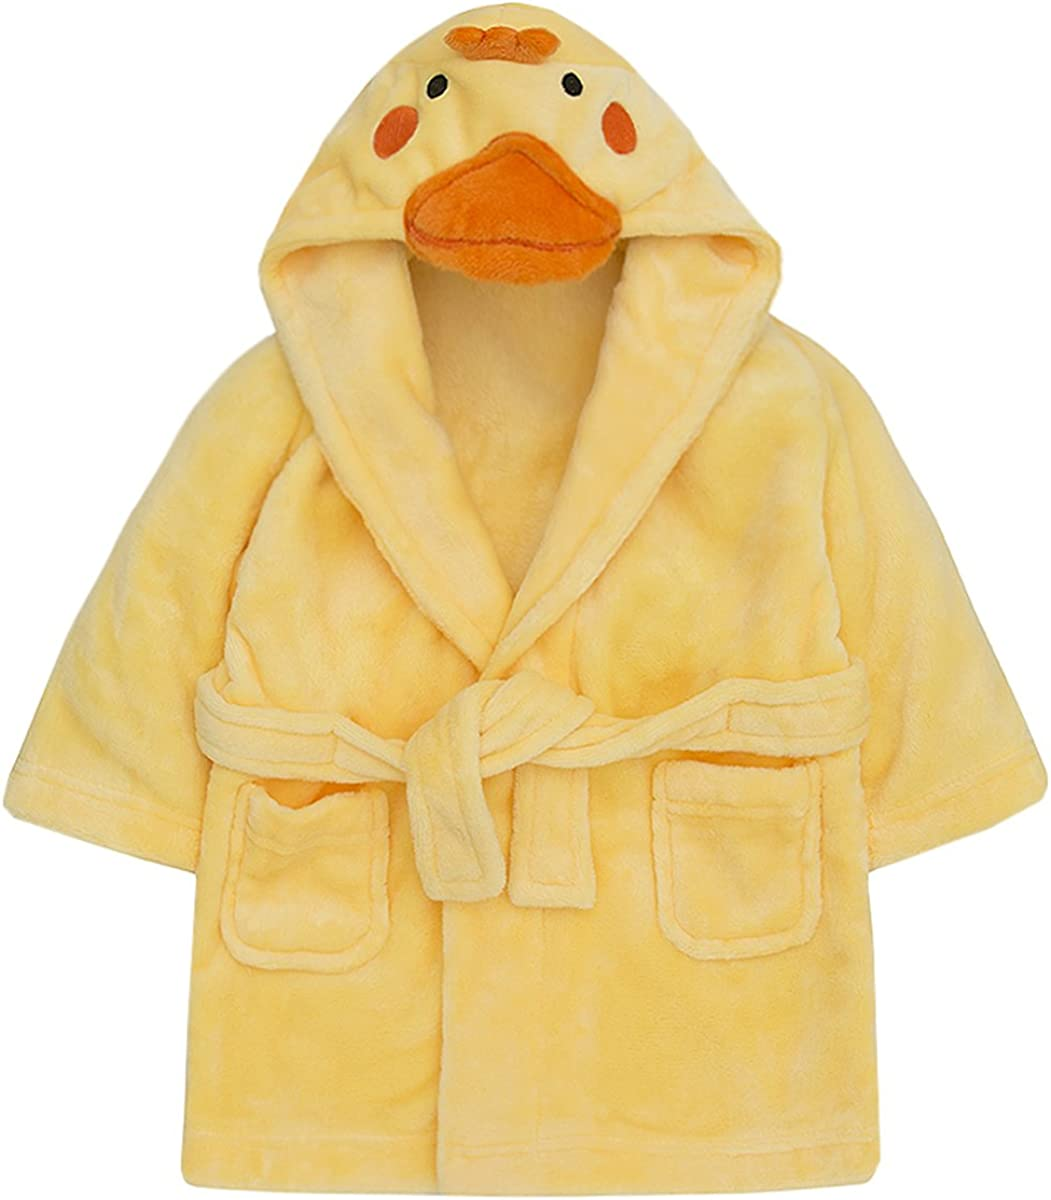 Childrens/Toddlers Soft Fleece Dressing Gown with Animal Hood ~ 6-24 Months (12-18 Months, Duck): Clothing